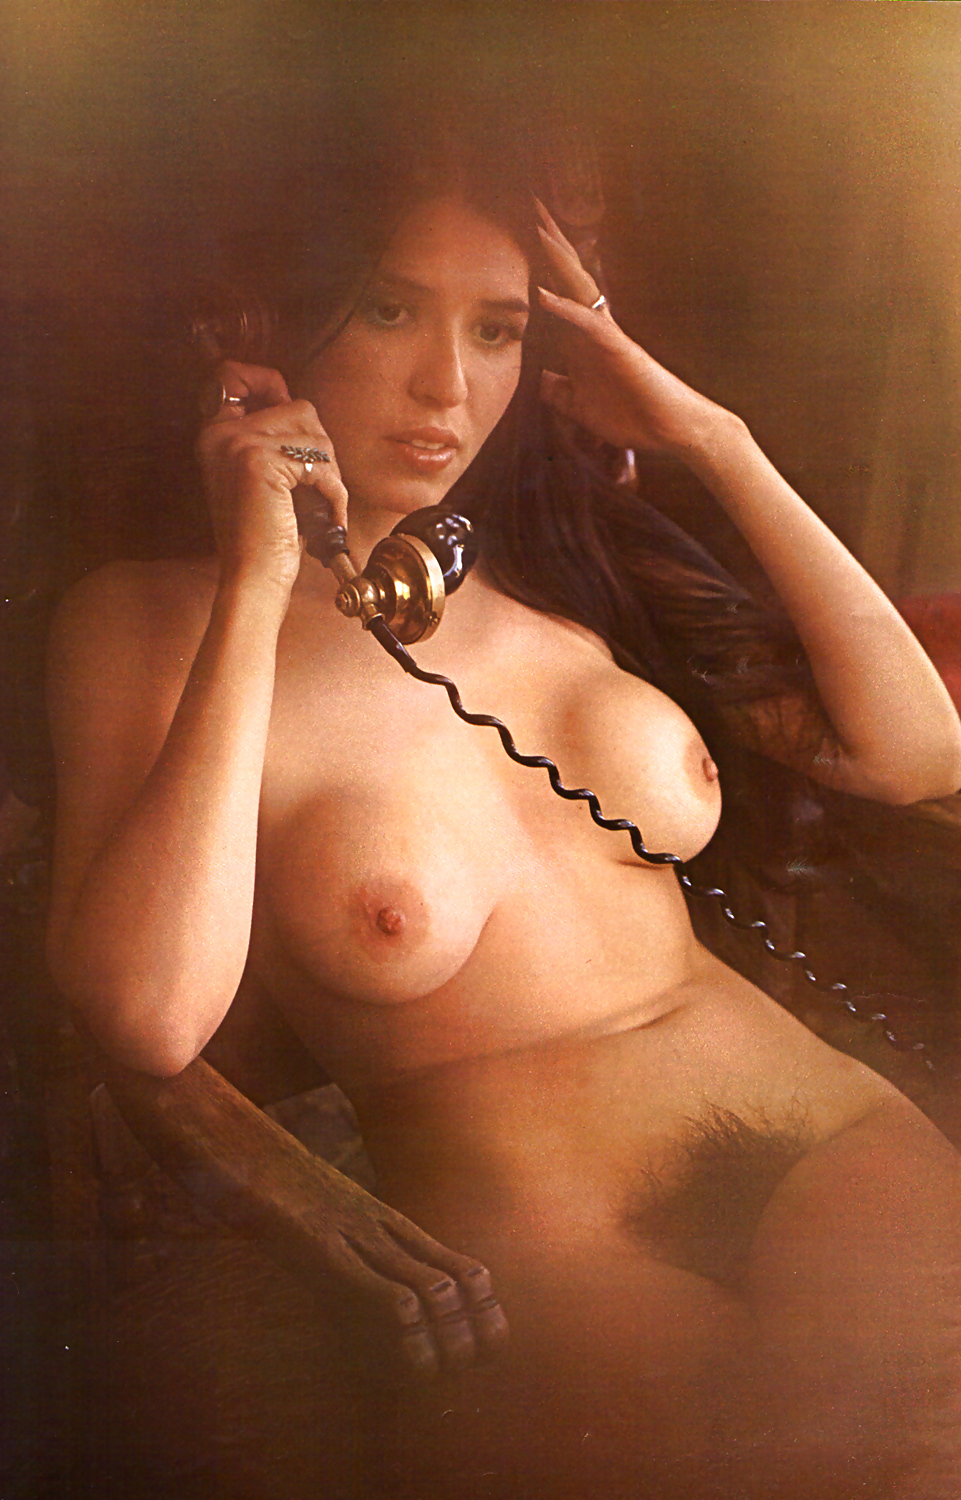 Agree, the american playboy models naked photos